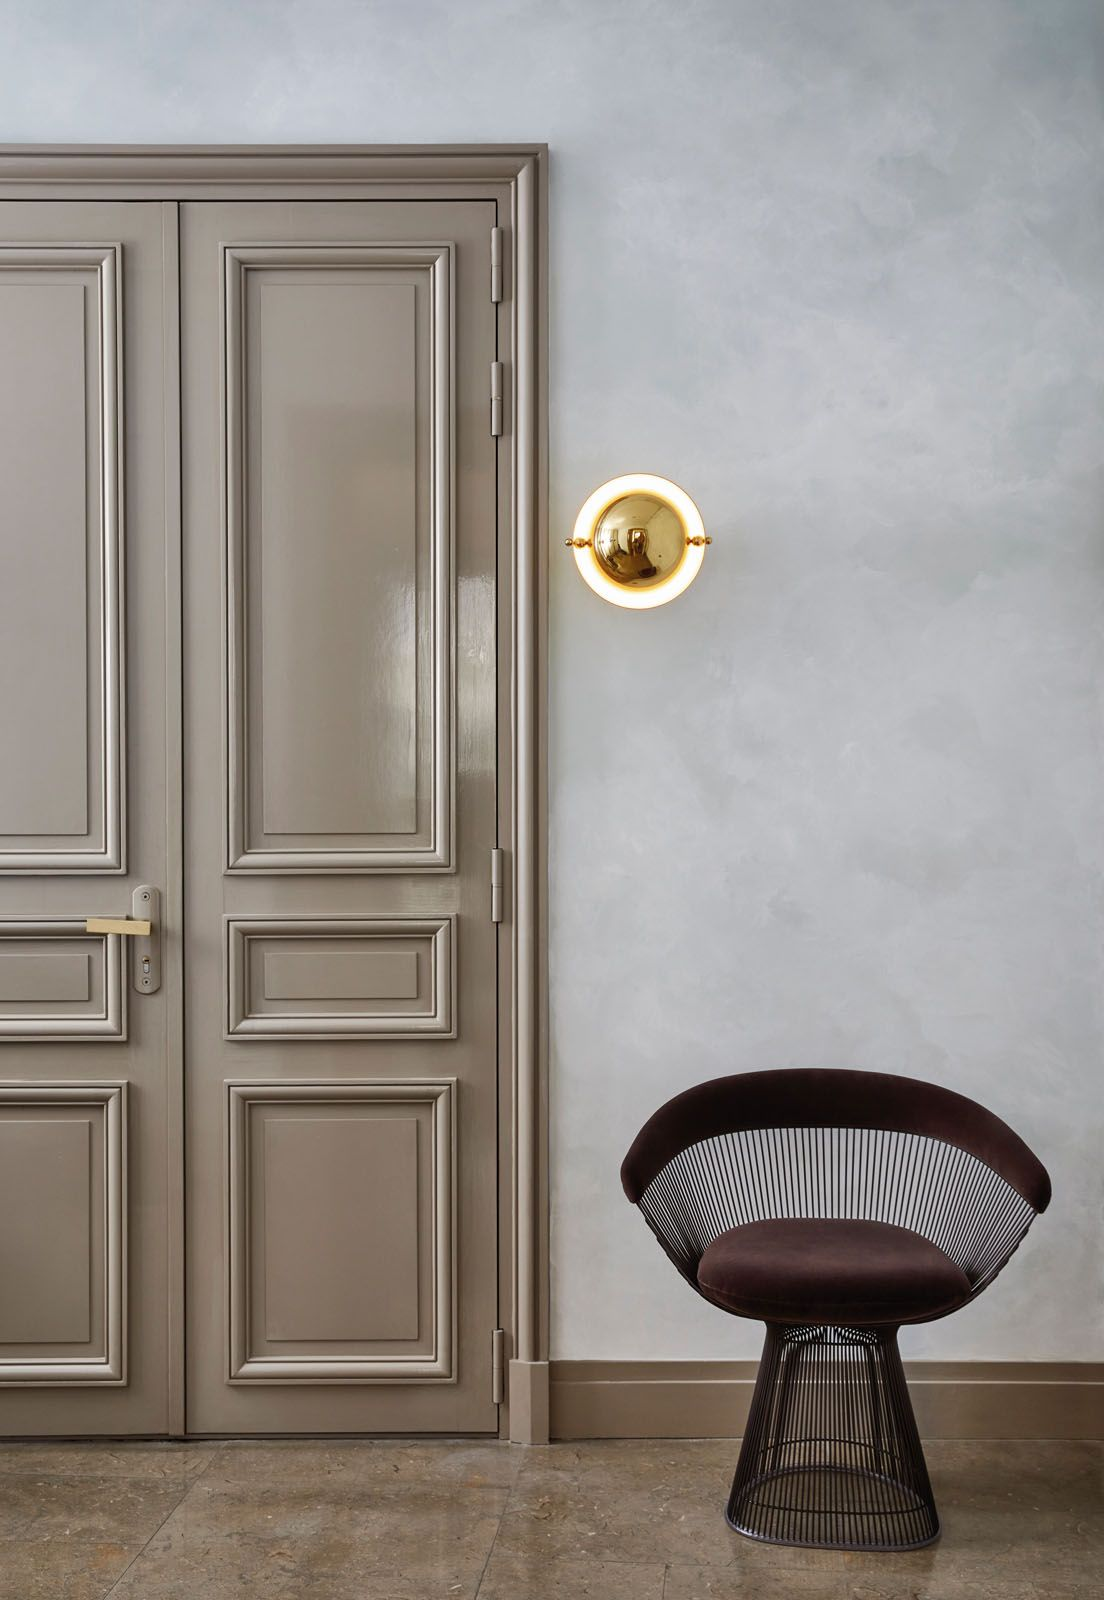 Champeau and Wilde Create Bring Modern Design To This Paris Apartment (3) champeau and wilde Champeau and Wilde Create Bring Modern Design To This Paris Apartment Champeau and Wilde Create Bring Modern Design To This Paris Apartment 3